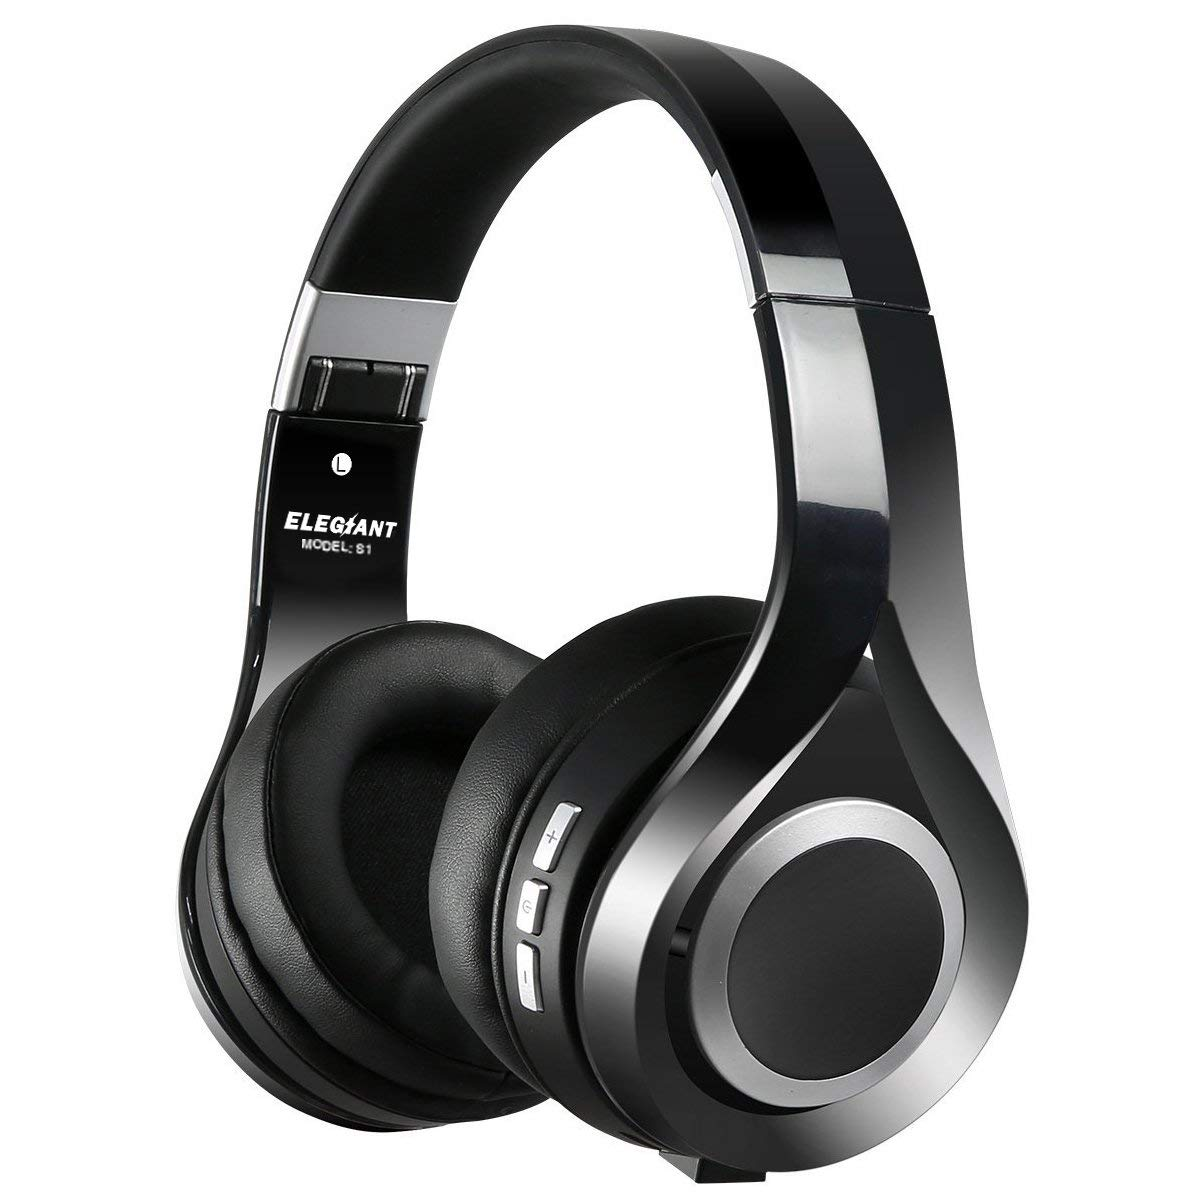 ELEGIANT Bluetooth Headphones Over Ear, Wireless Headphones HiFi Stereo Foldable Headset with Built-in Mic Wired and Wireless Modes Soft & Comfortable for PC Cellphone TV and More - Black